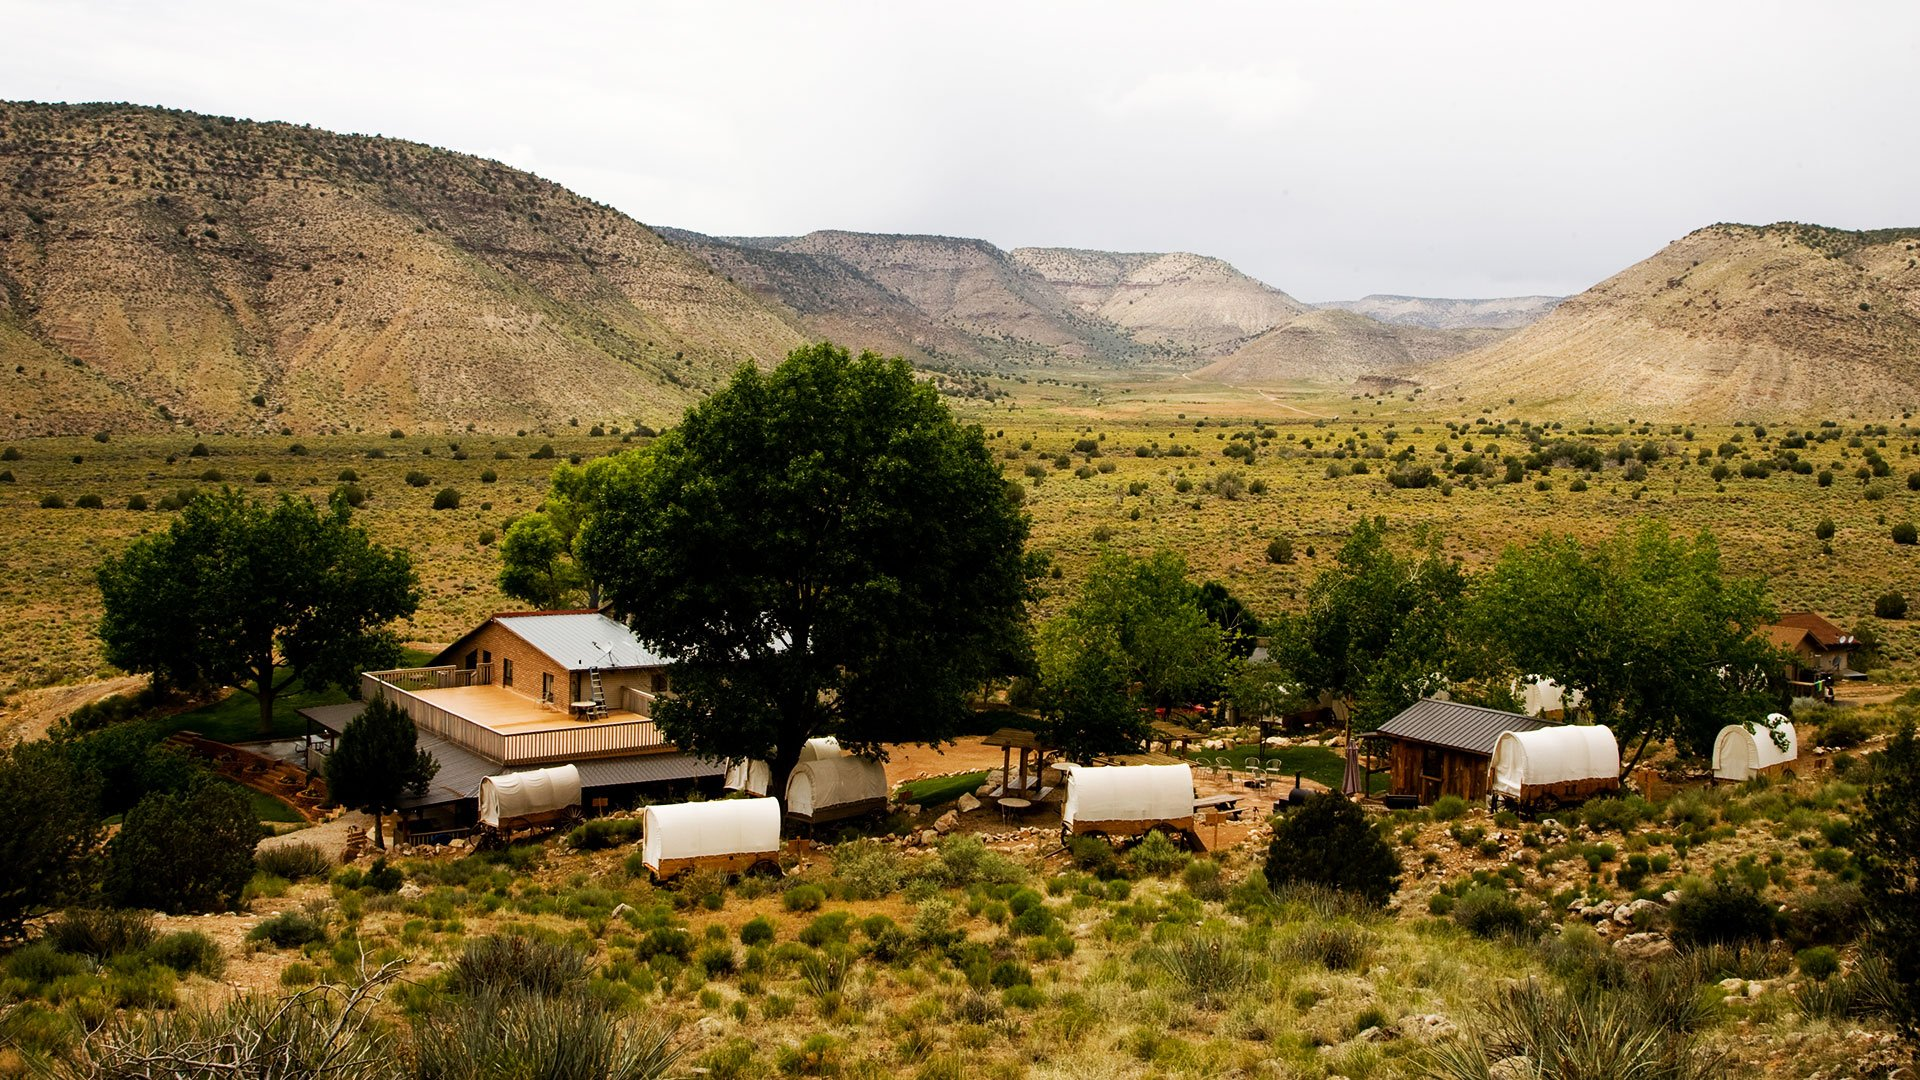 A view of Bar 10 Ranch, their covered wagons, and the surrounding nature.